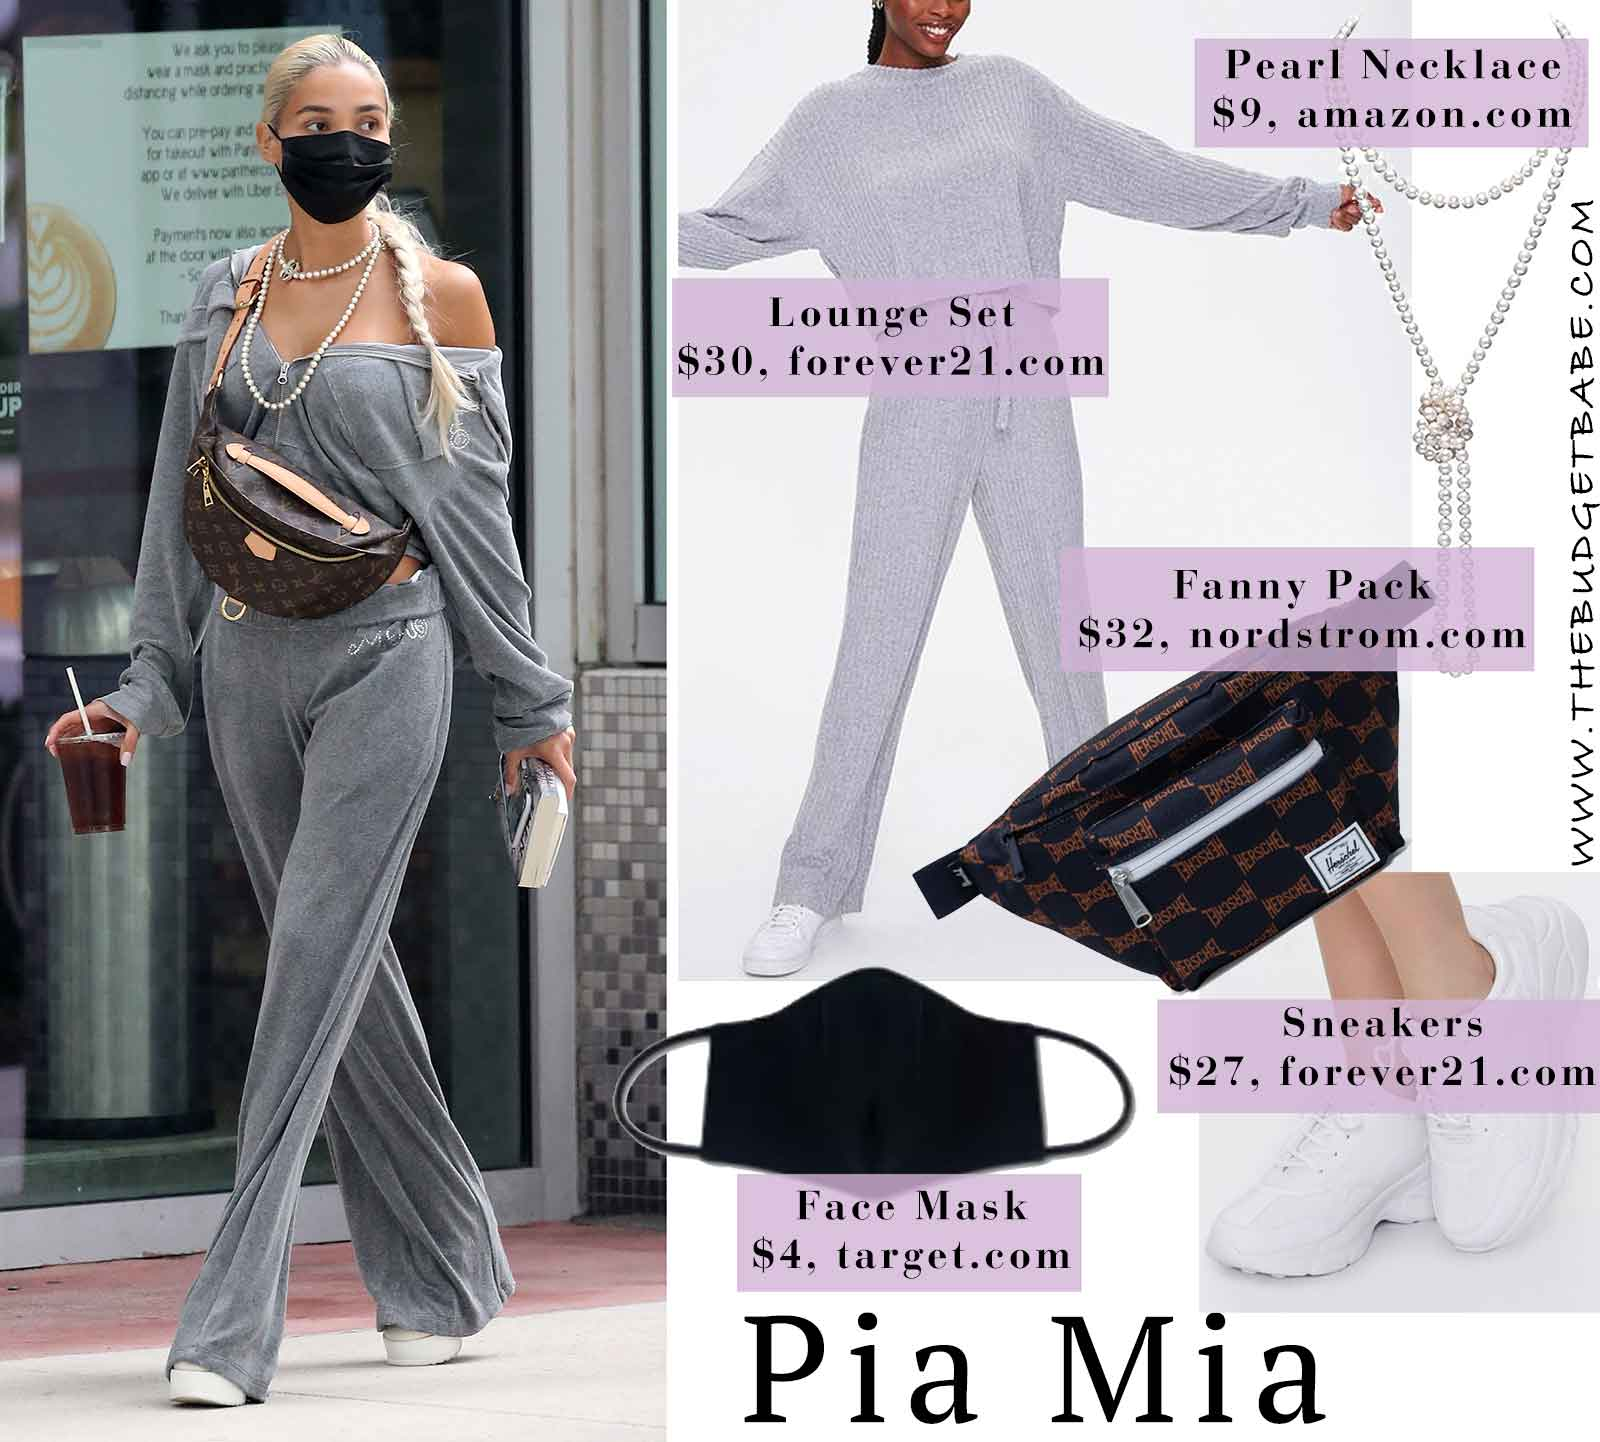 Pia Mia loungewear set and platform sneakers